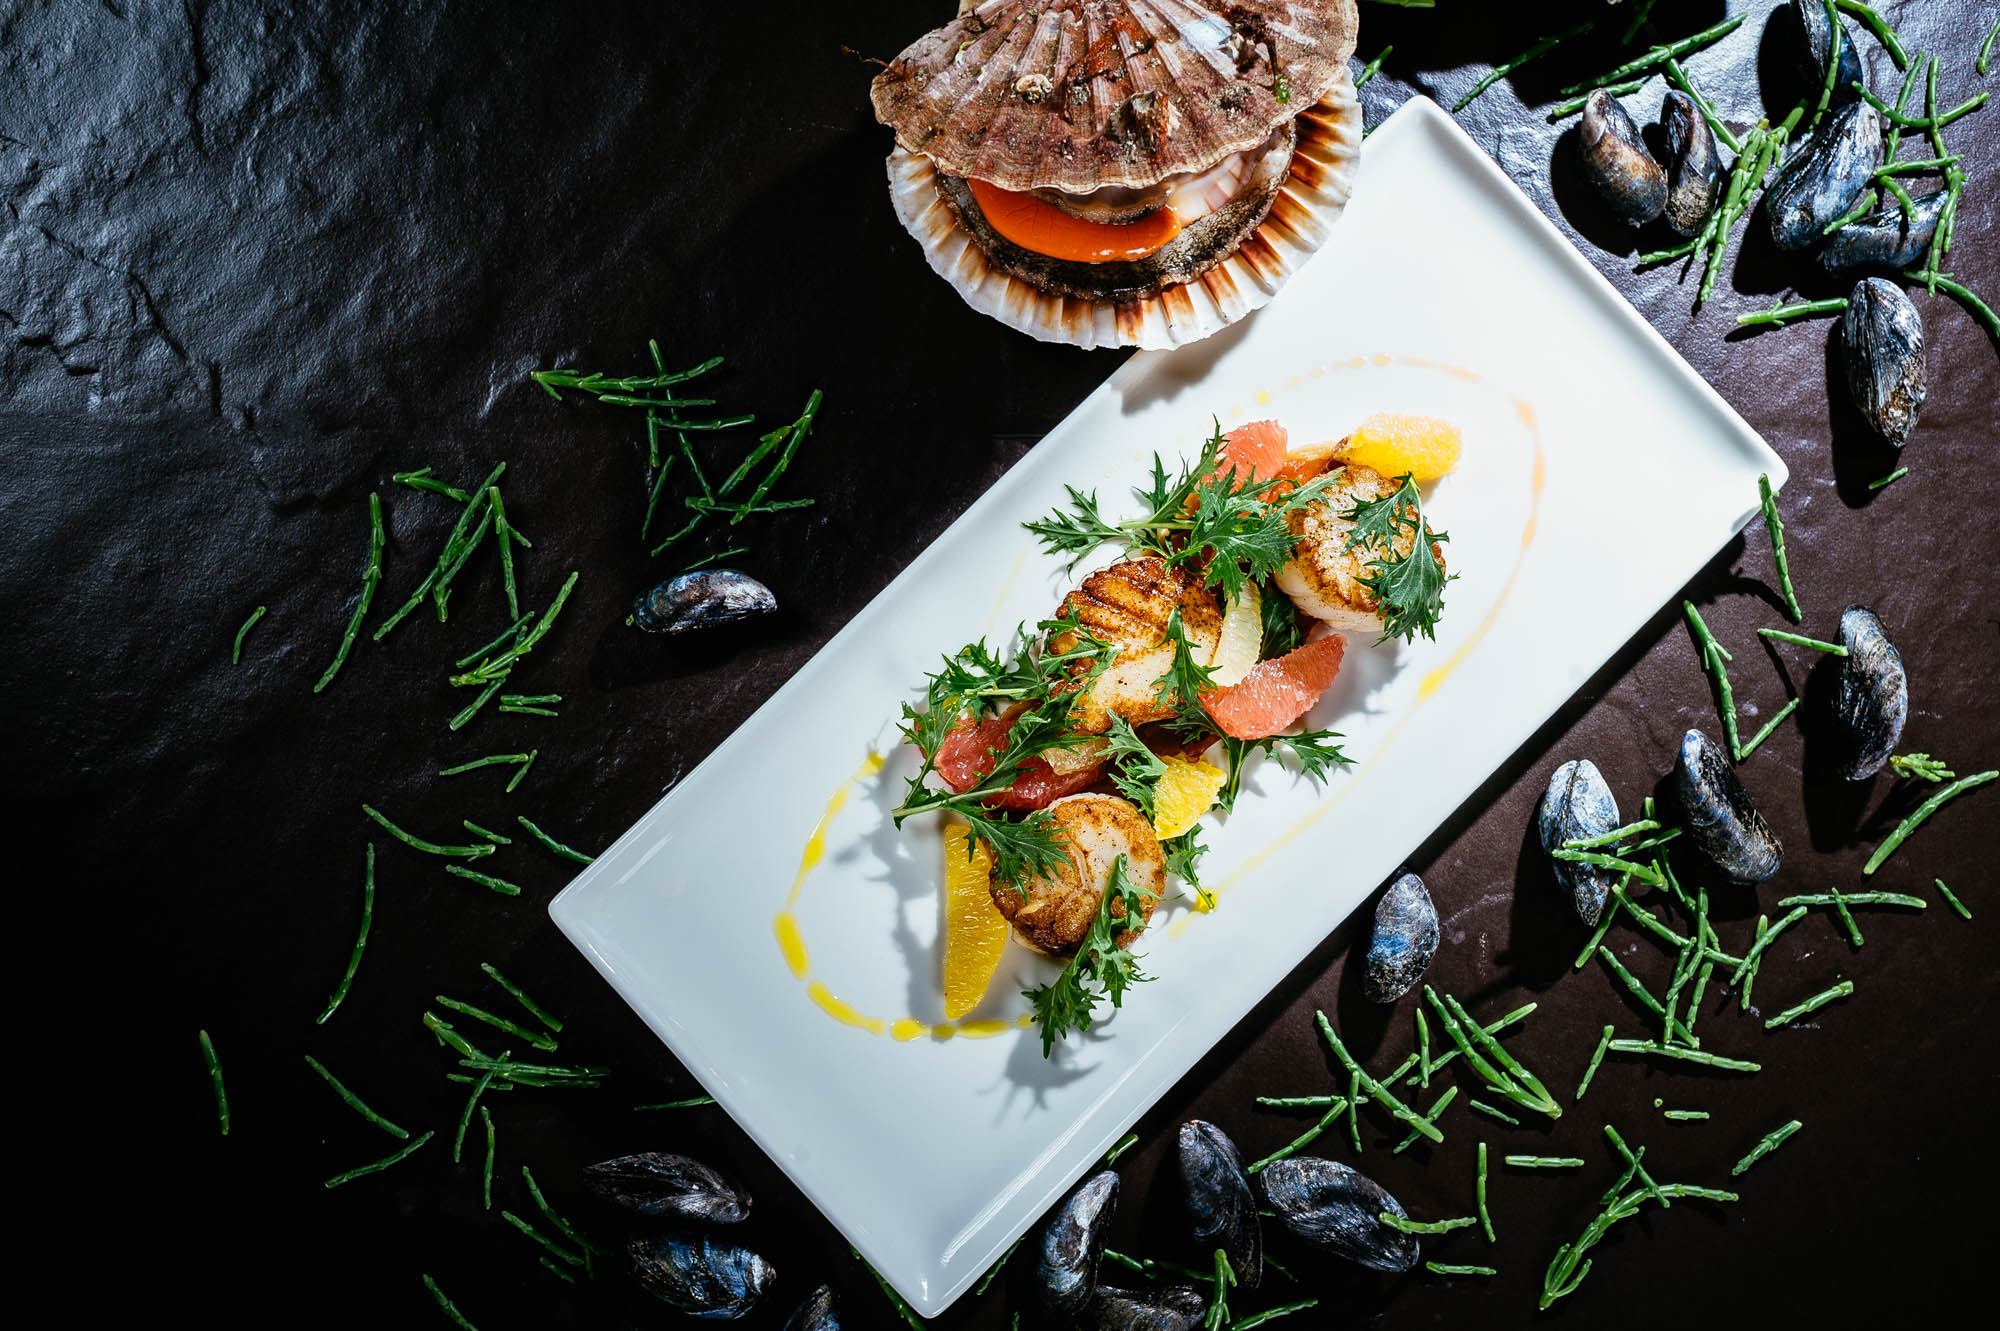 A photo of a seafood dish on a white plate upon a black surface